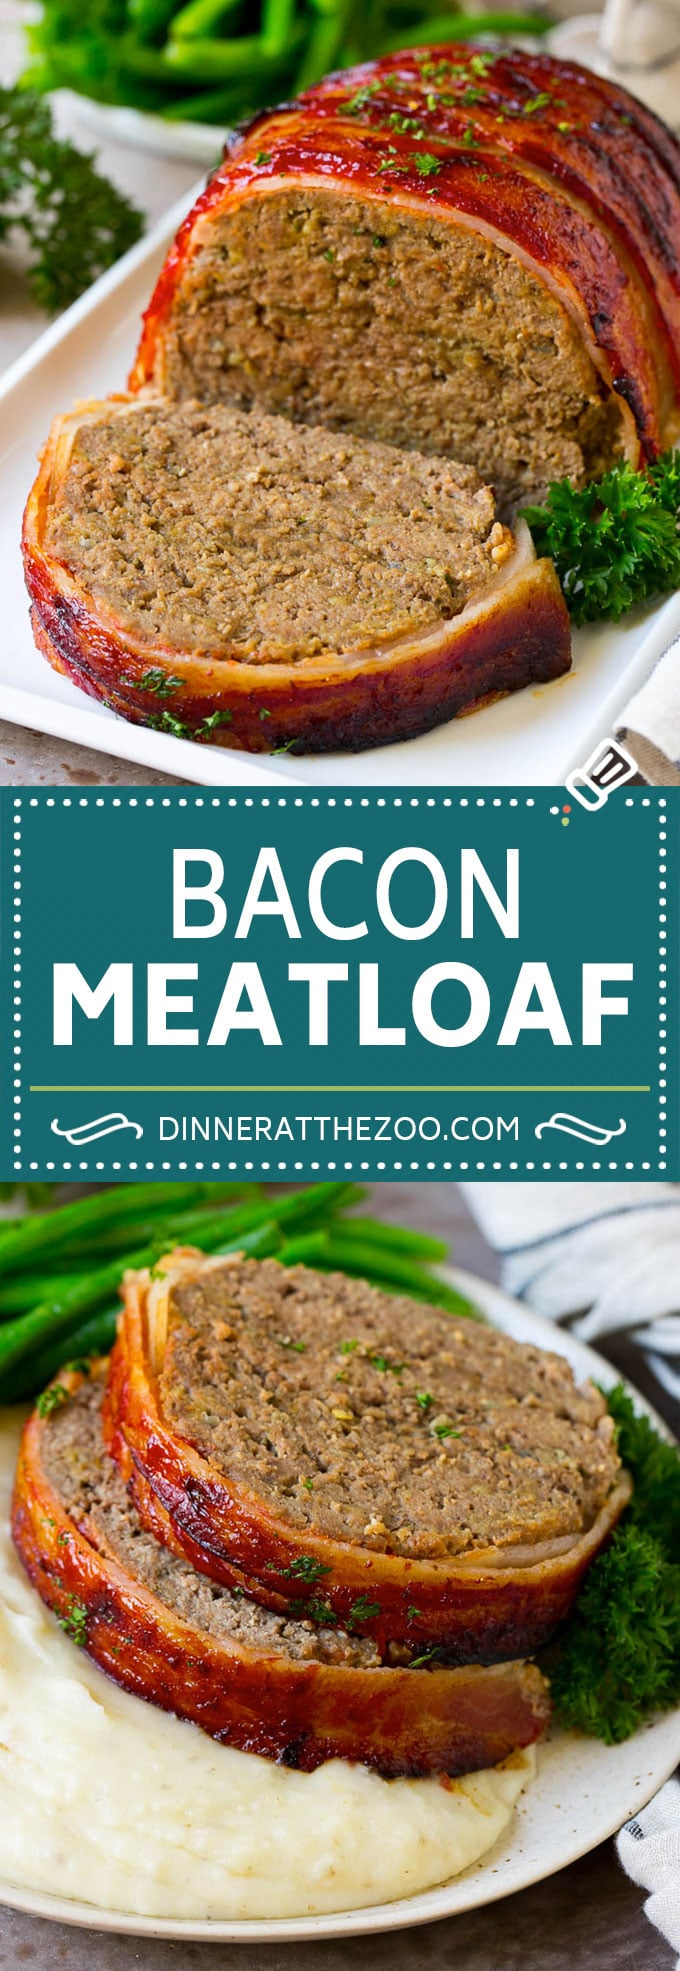 Bacon Wrapped Meatloaf Recipe | Beef Meatloaf #meatloaf #beef #groundbeef #bacon #dinner #dinneratthezoo